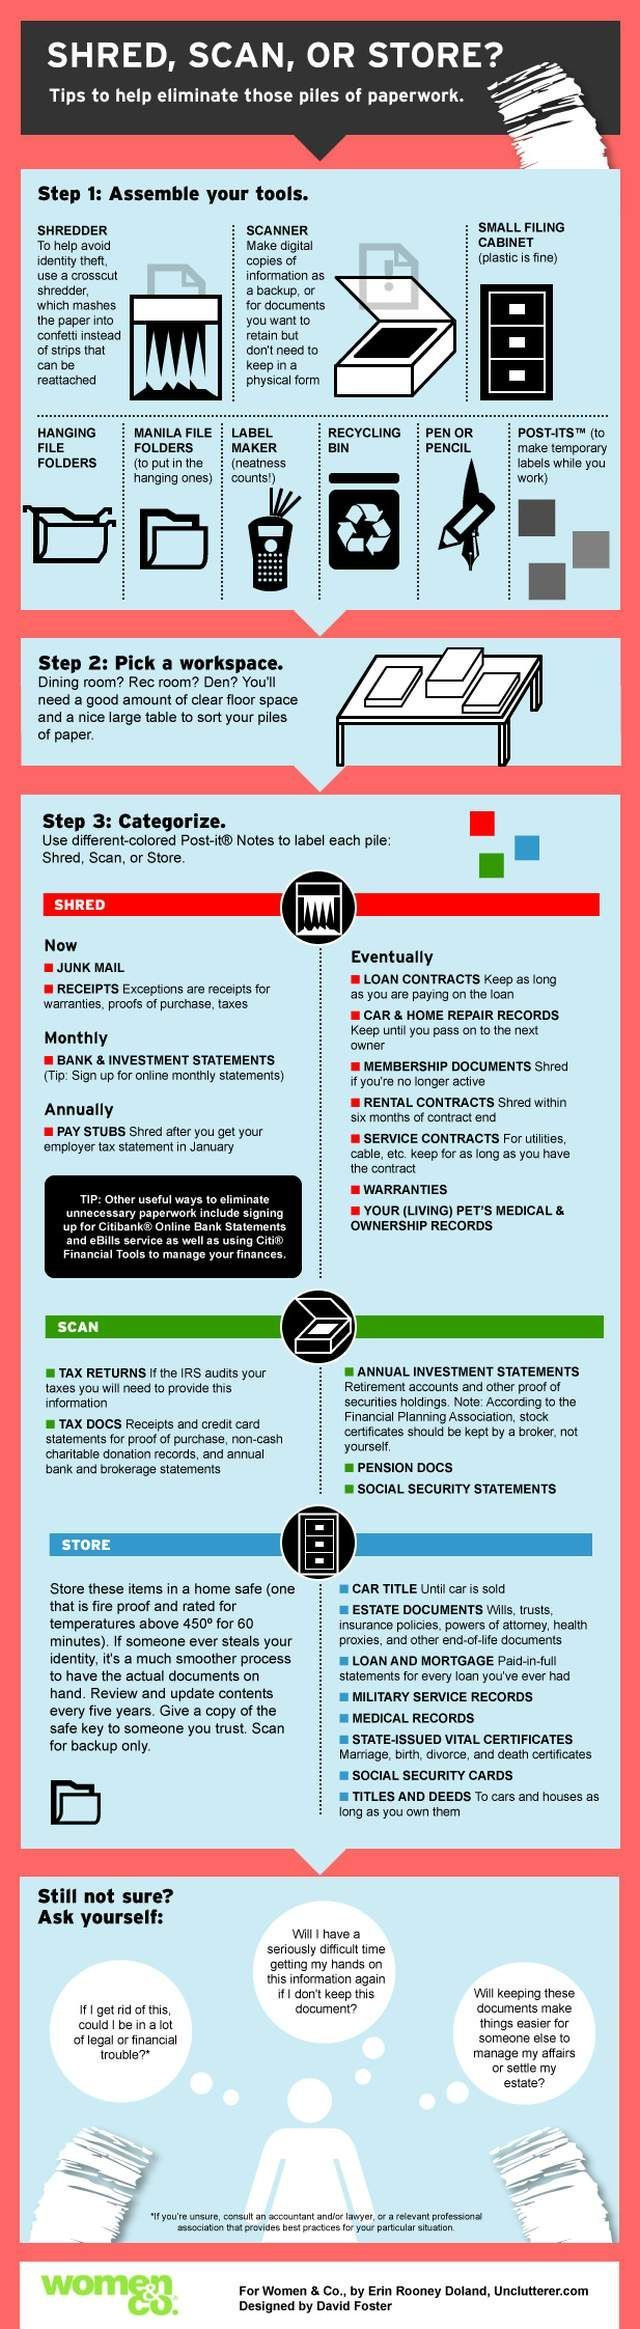 This Infographic Shows You What Documents to Shred, Scan, or Store | Organizing paperwork, Paper